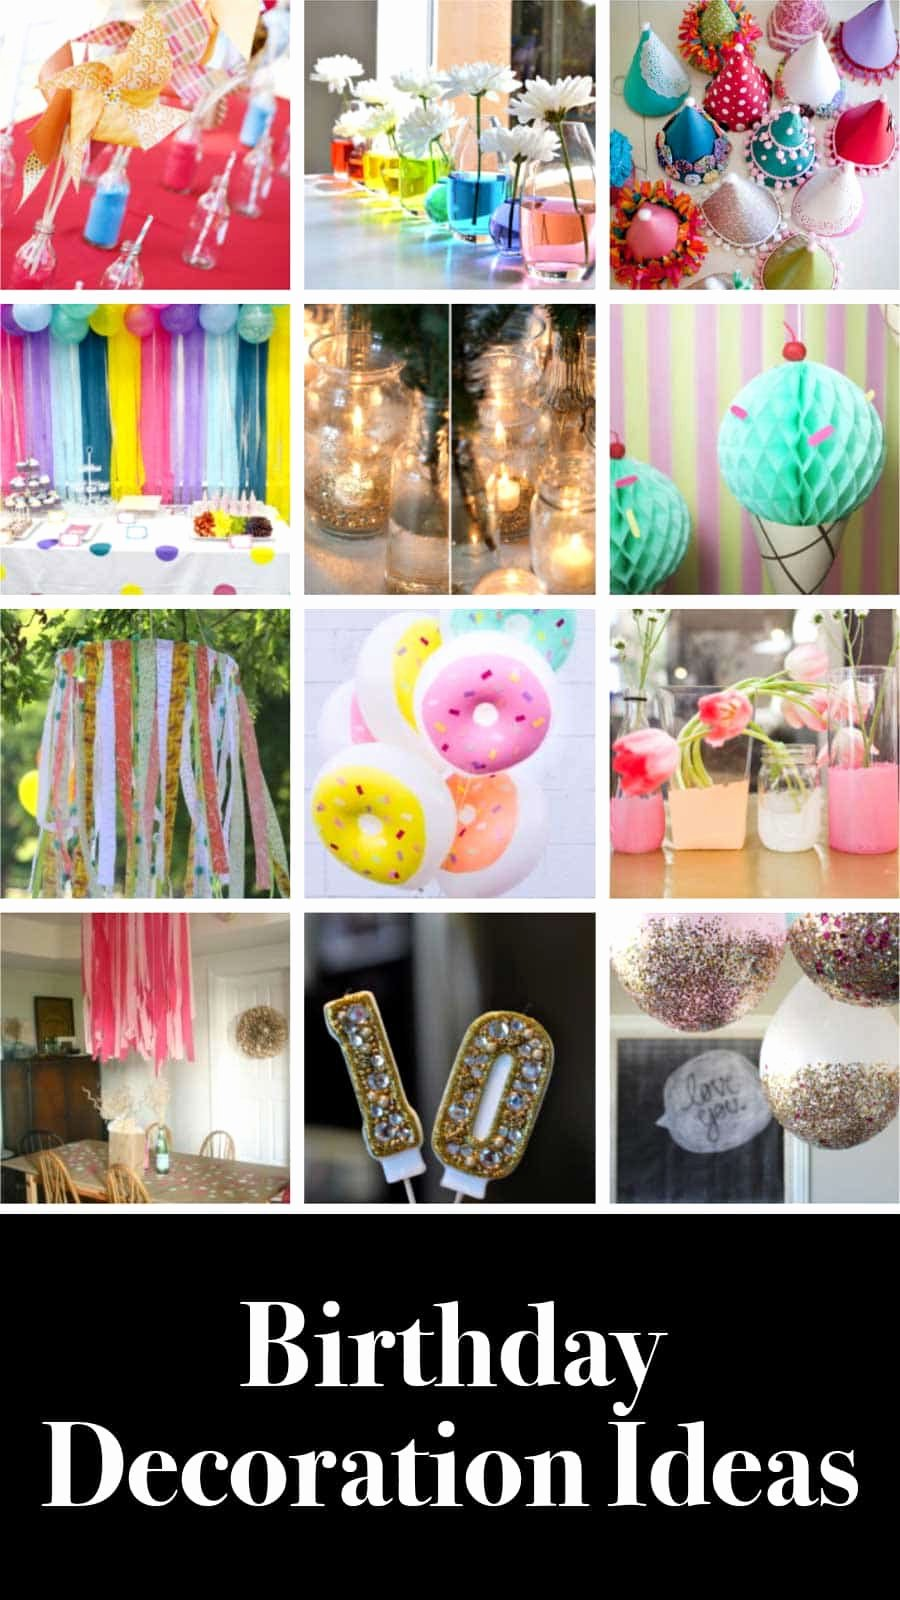 Birthday Decoration Ideas for Kids at Home Luxury 12 Easy Diy Birthday Decoration Ideas 2020